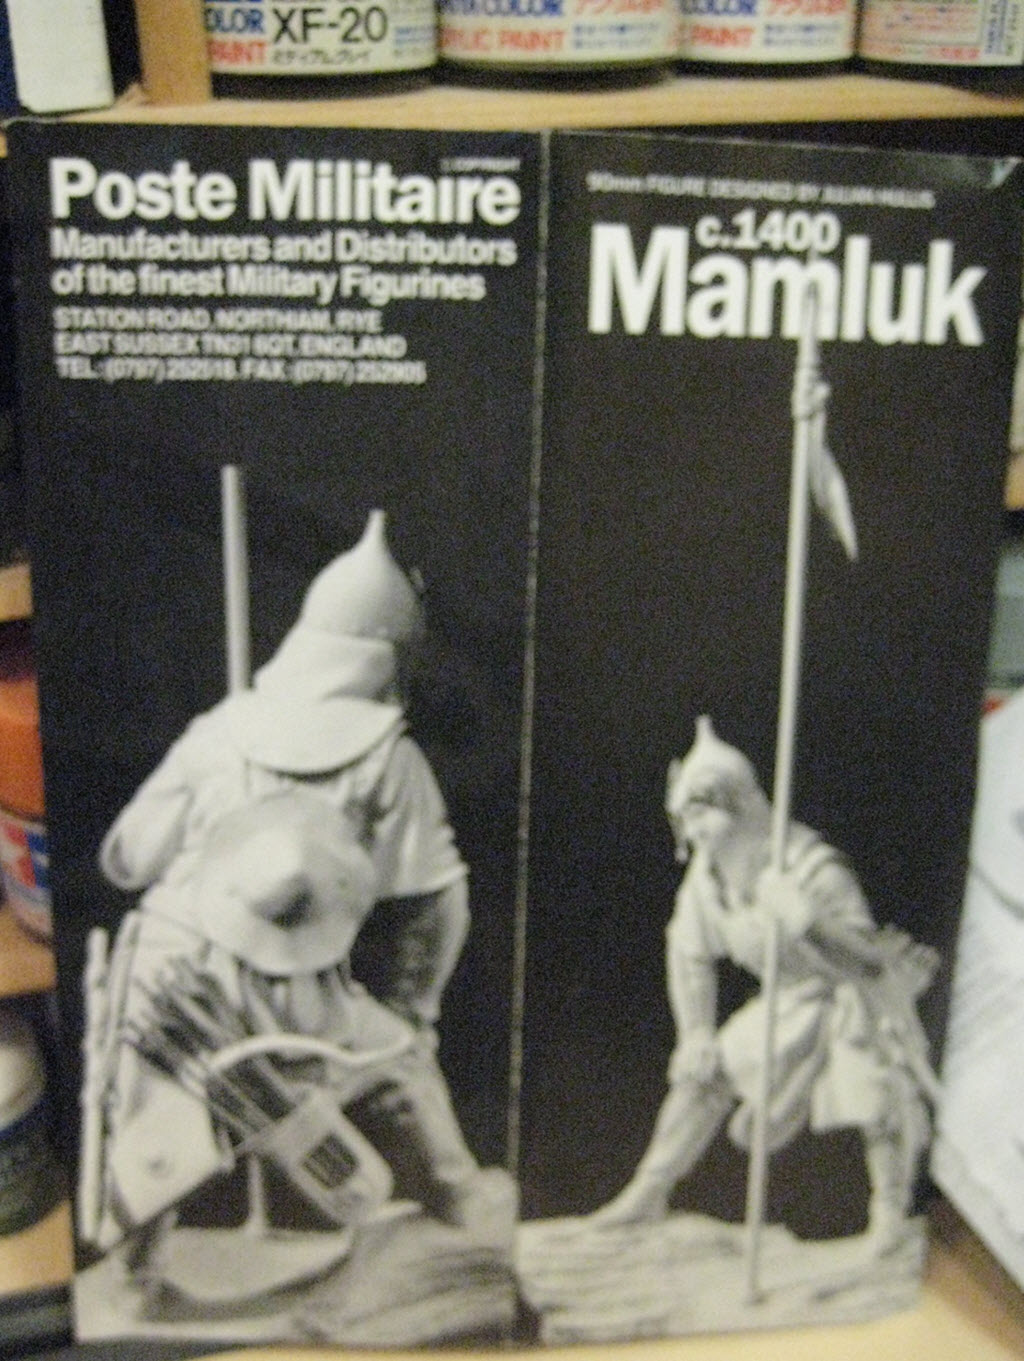 Mameluk 1400 120mm Post Militaire 1a31